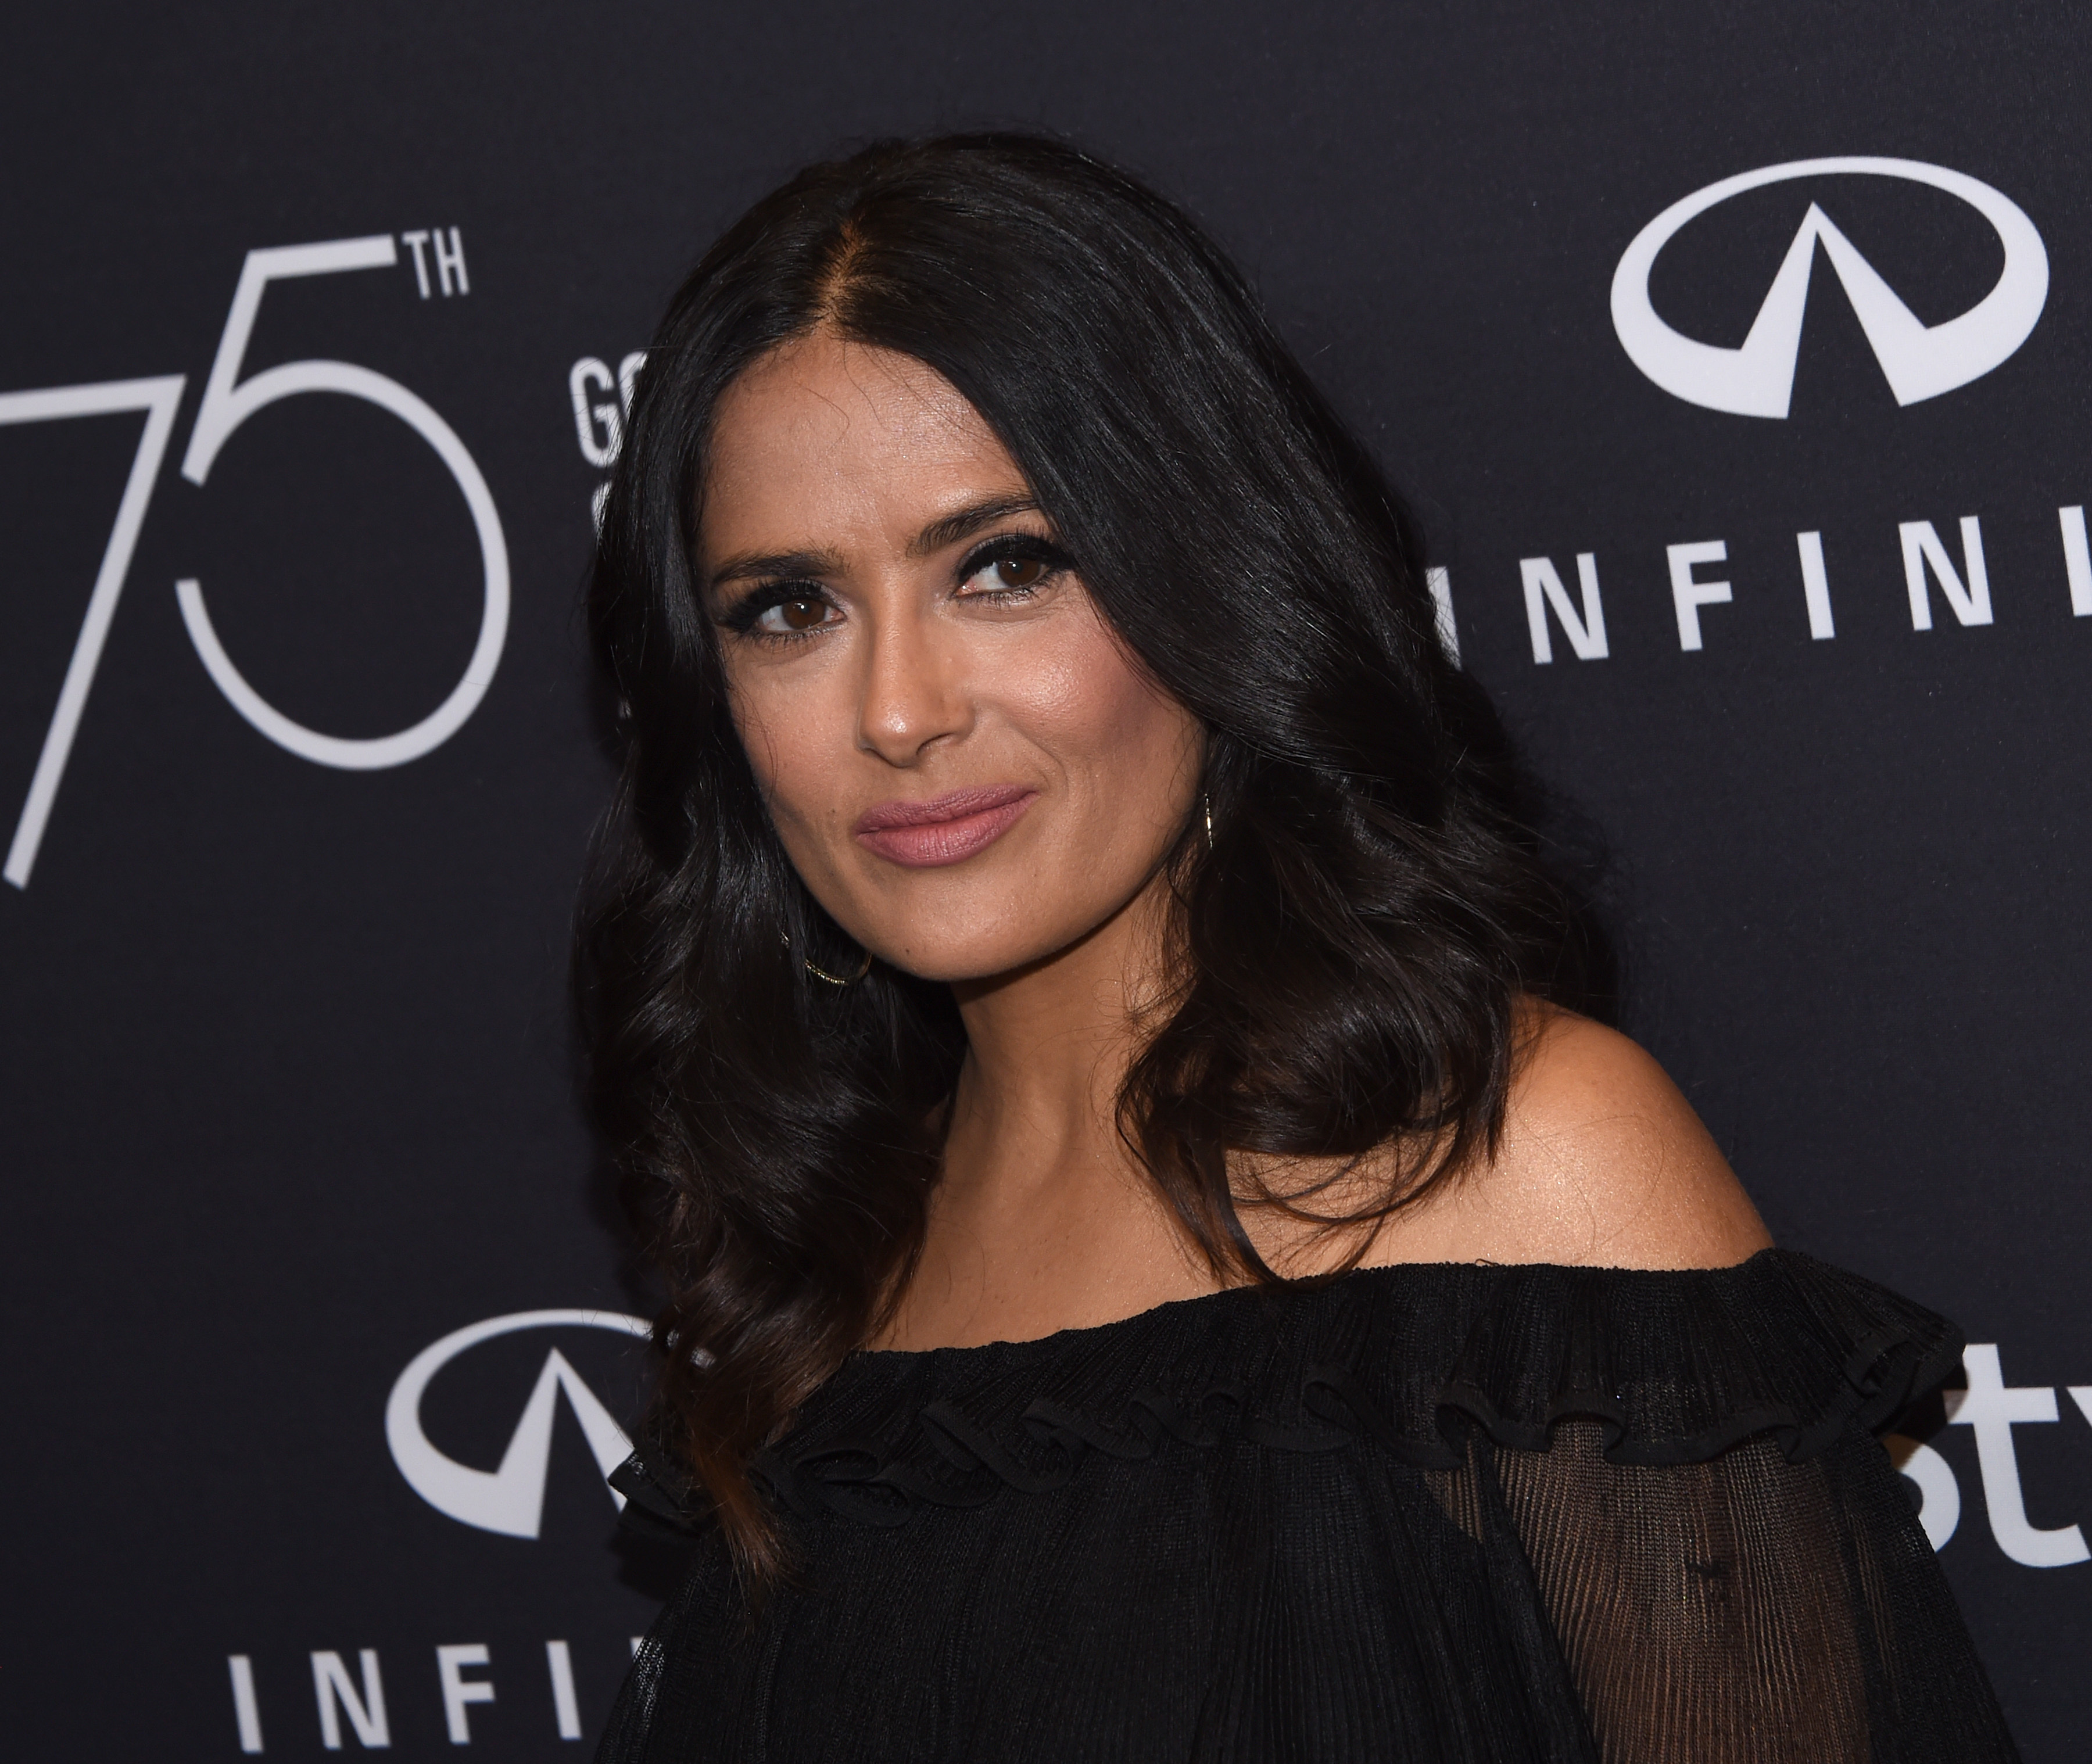 Harcèlement, humiliations, Salma Hayek raconte ses relations avec Harvey Weinstein